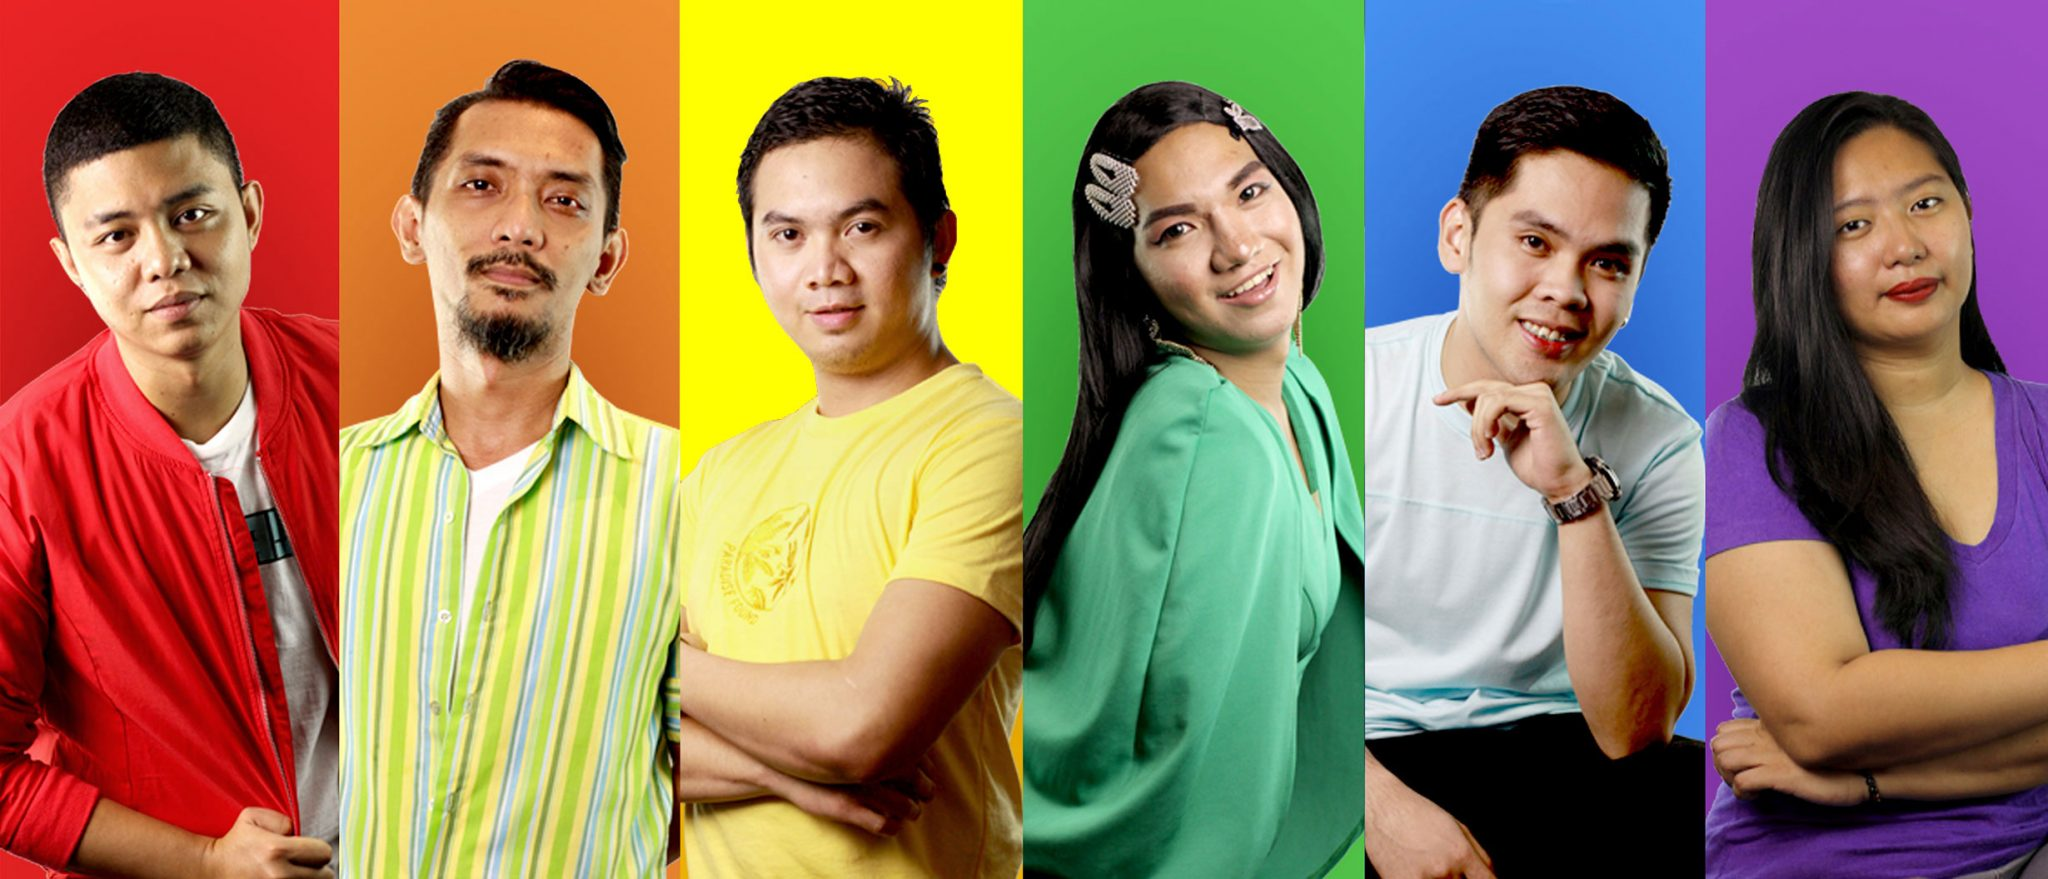 Open Access BPO's LEGBTQIA+ employees talk about Pride 2019